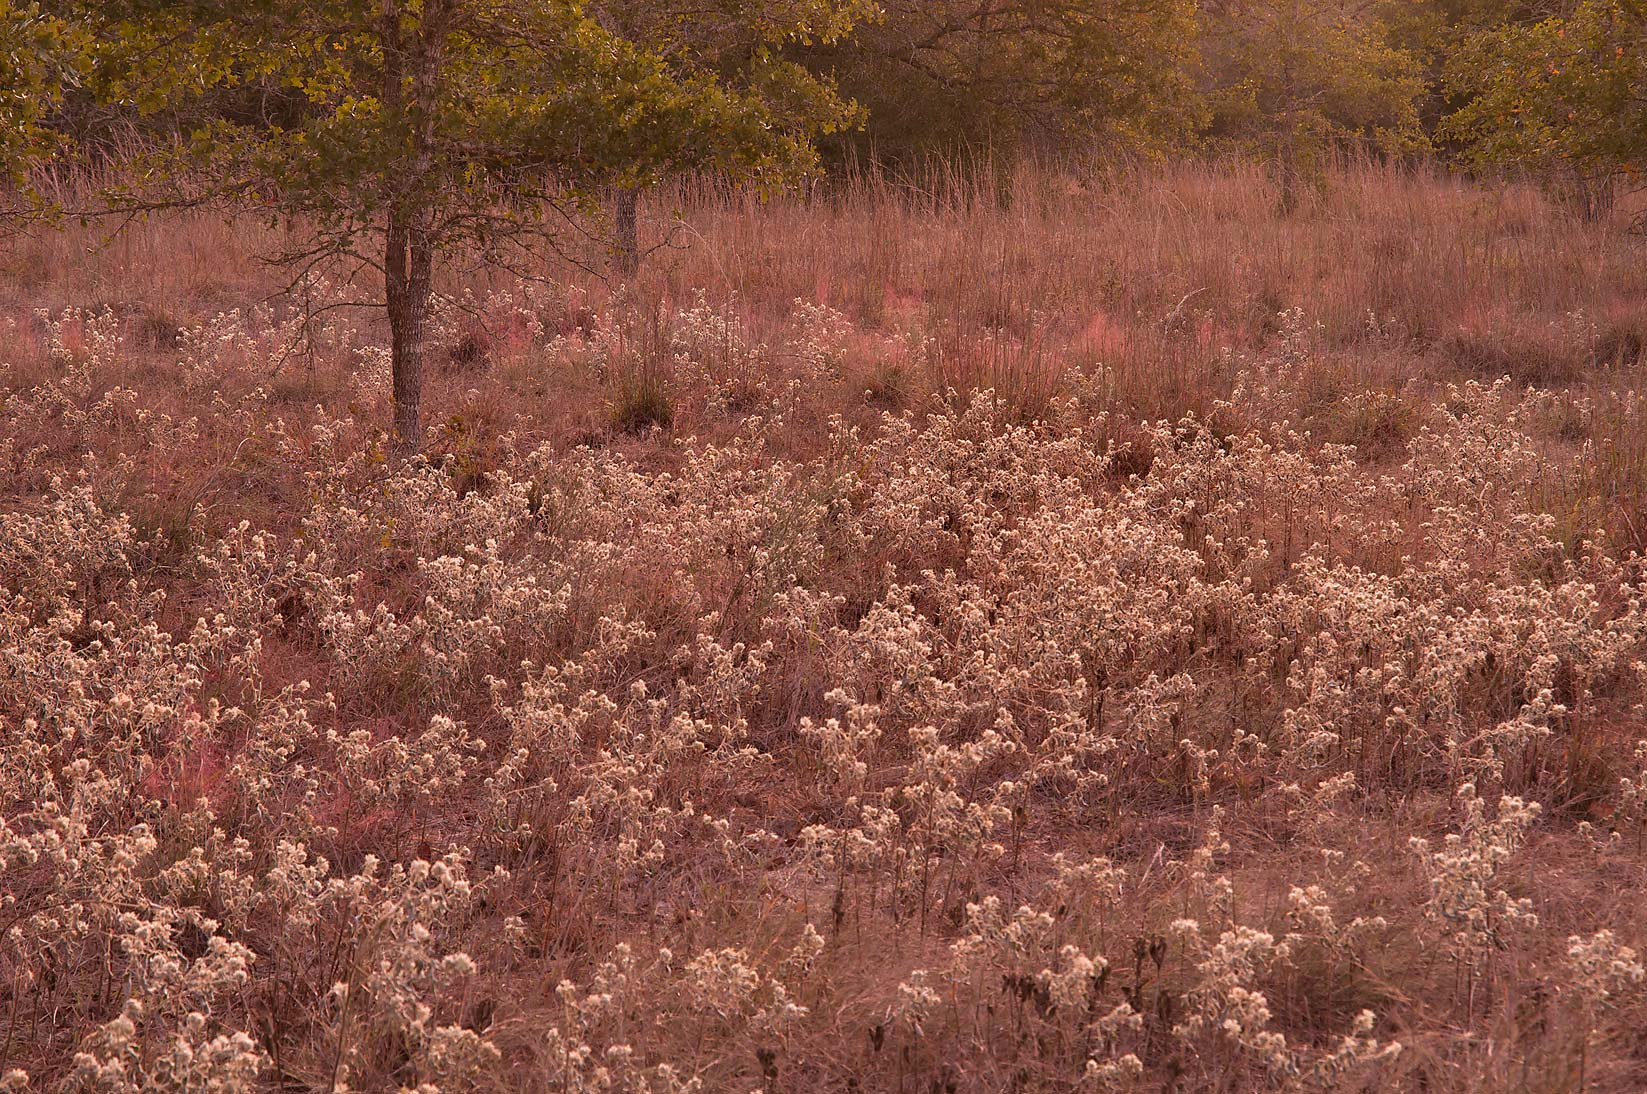 Dry prairie in Lick Creek Park. College Station, Texas